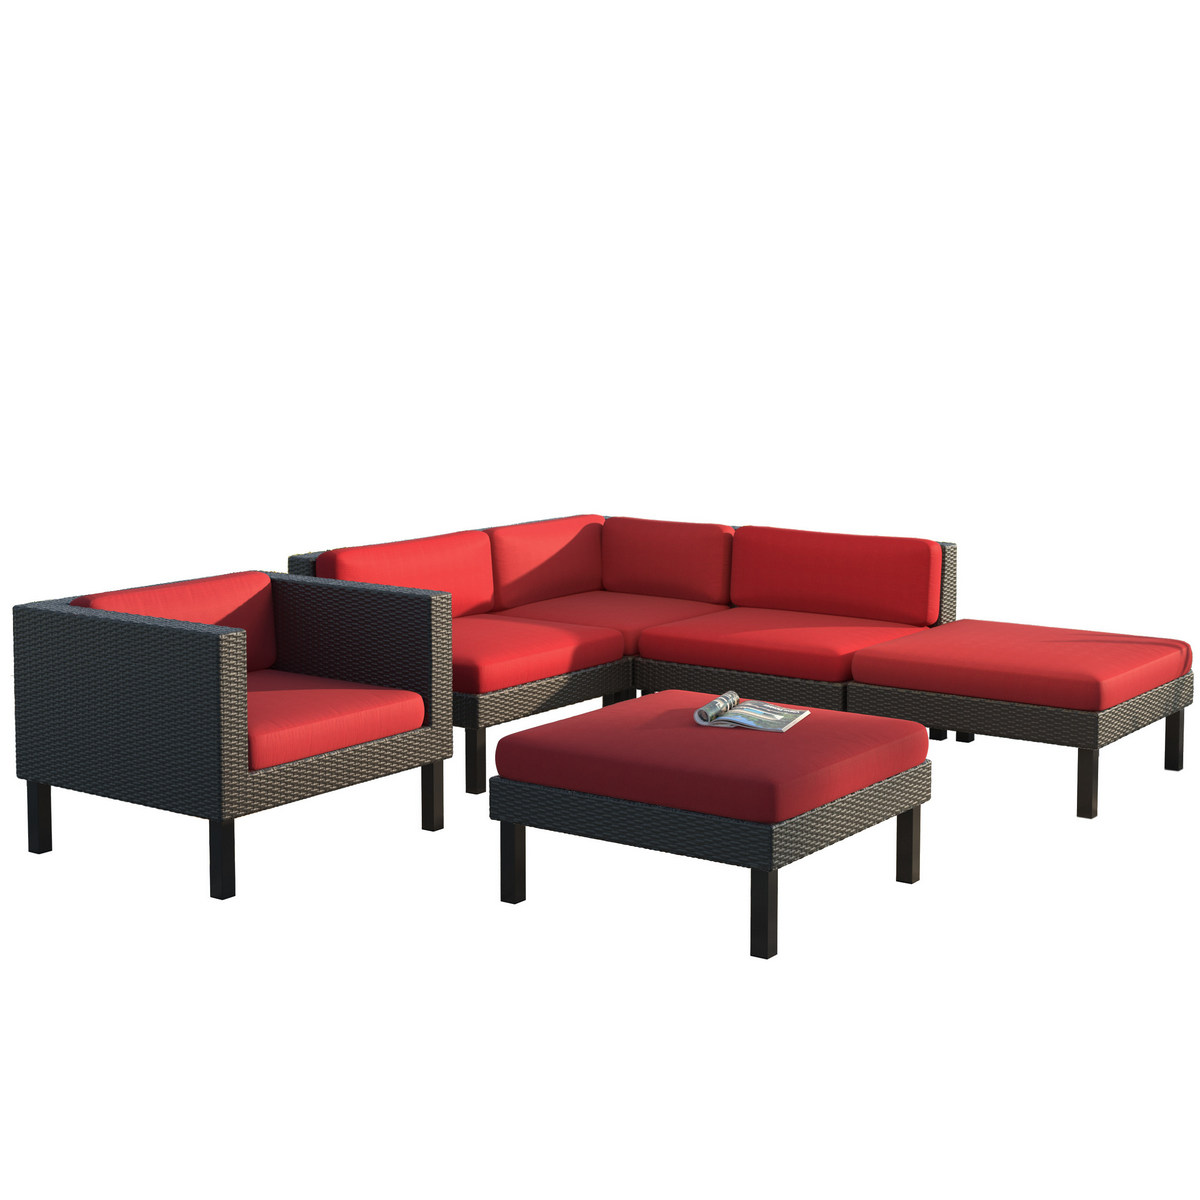 Corliving Sectional Chaise Lounge Chair Patio Set